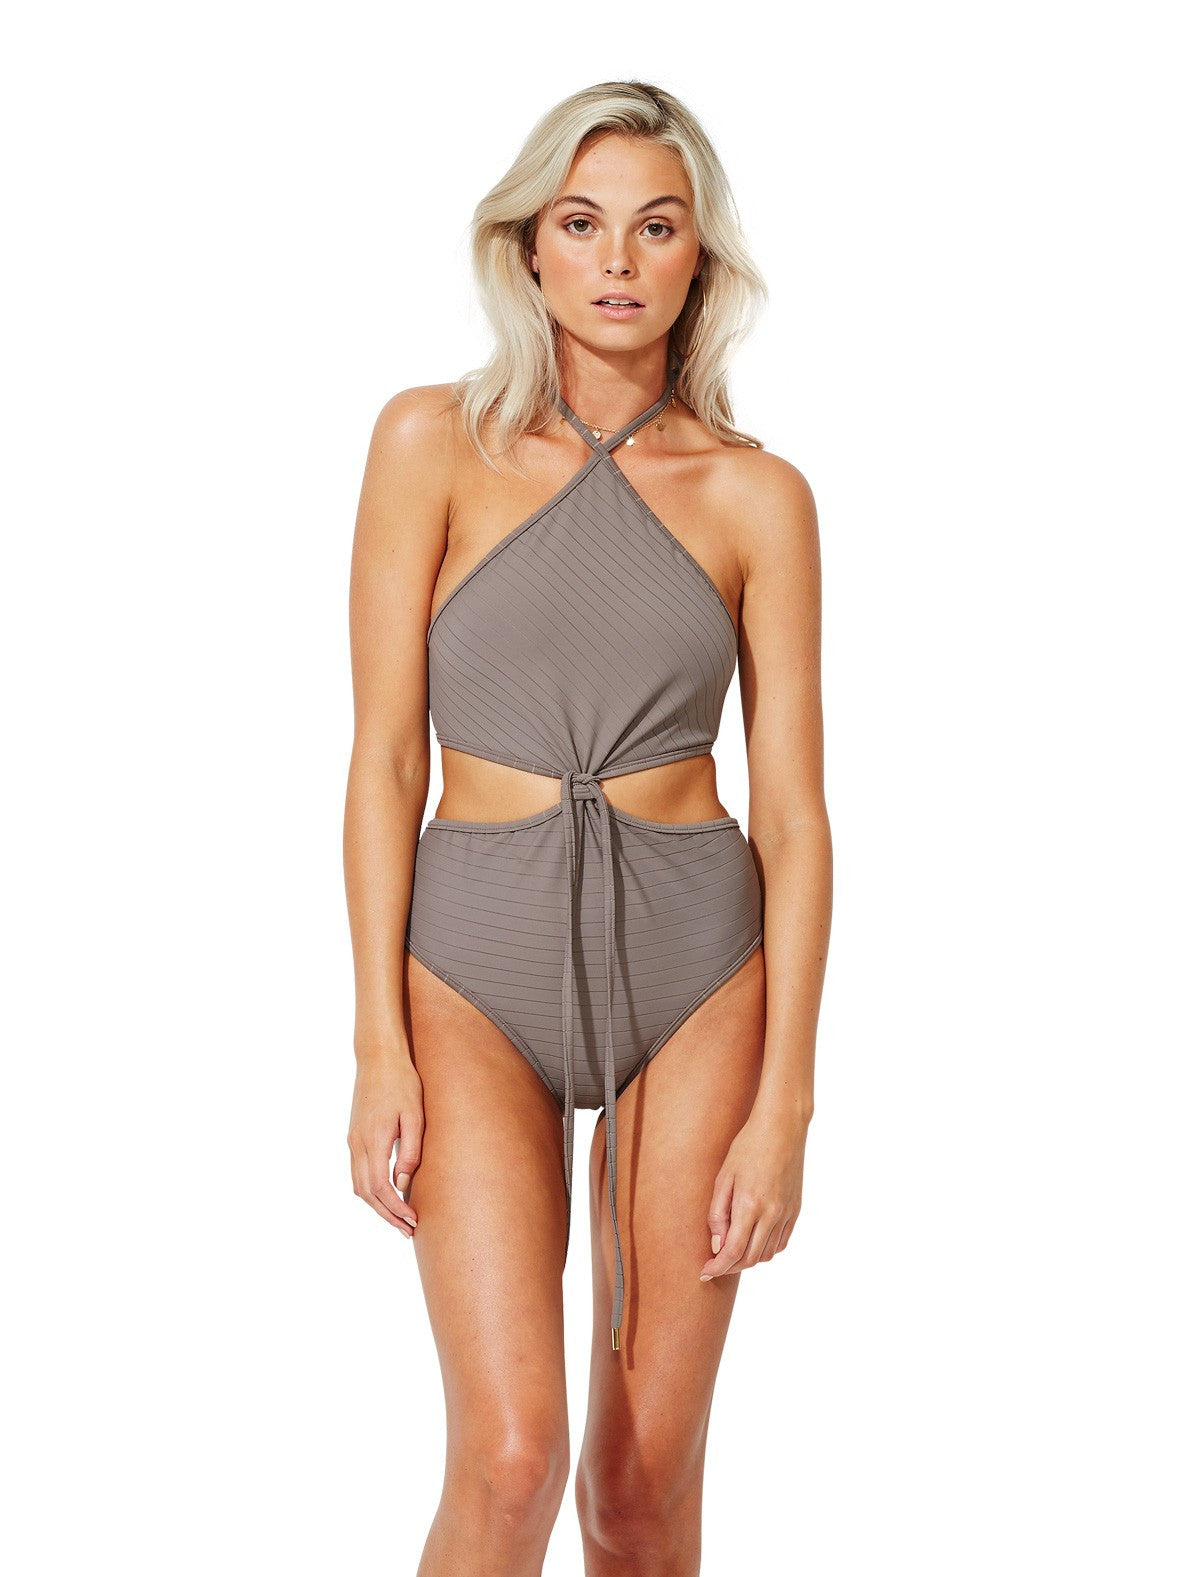 Sun Star One Piece - Bec & Bridge - Swim Suit - TOPGEARNY